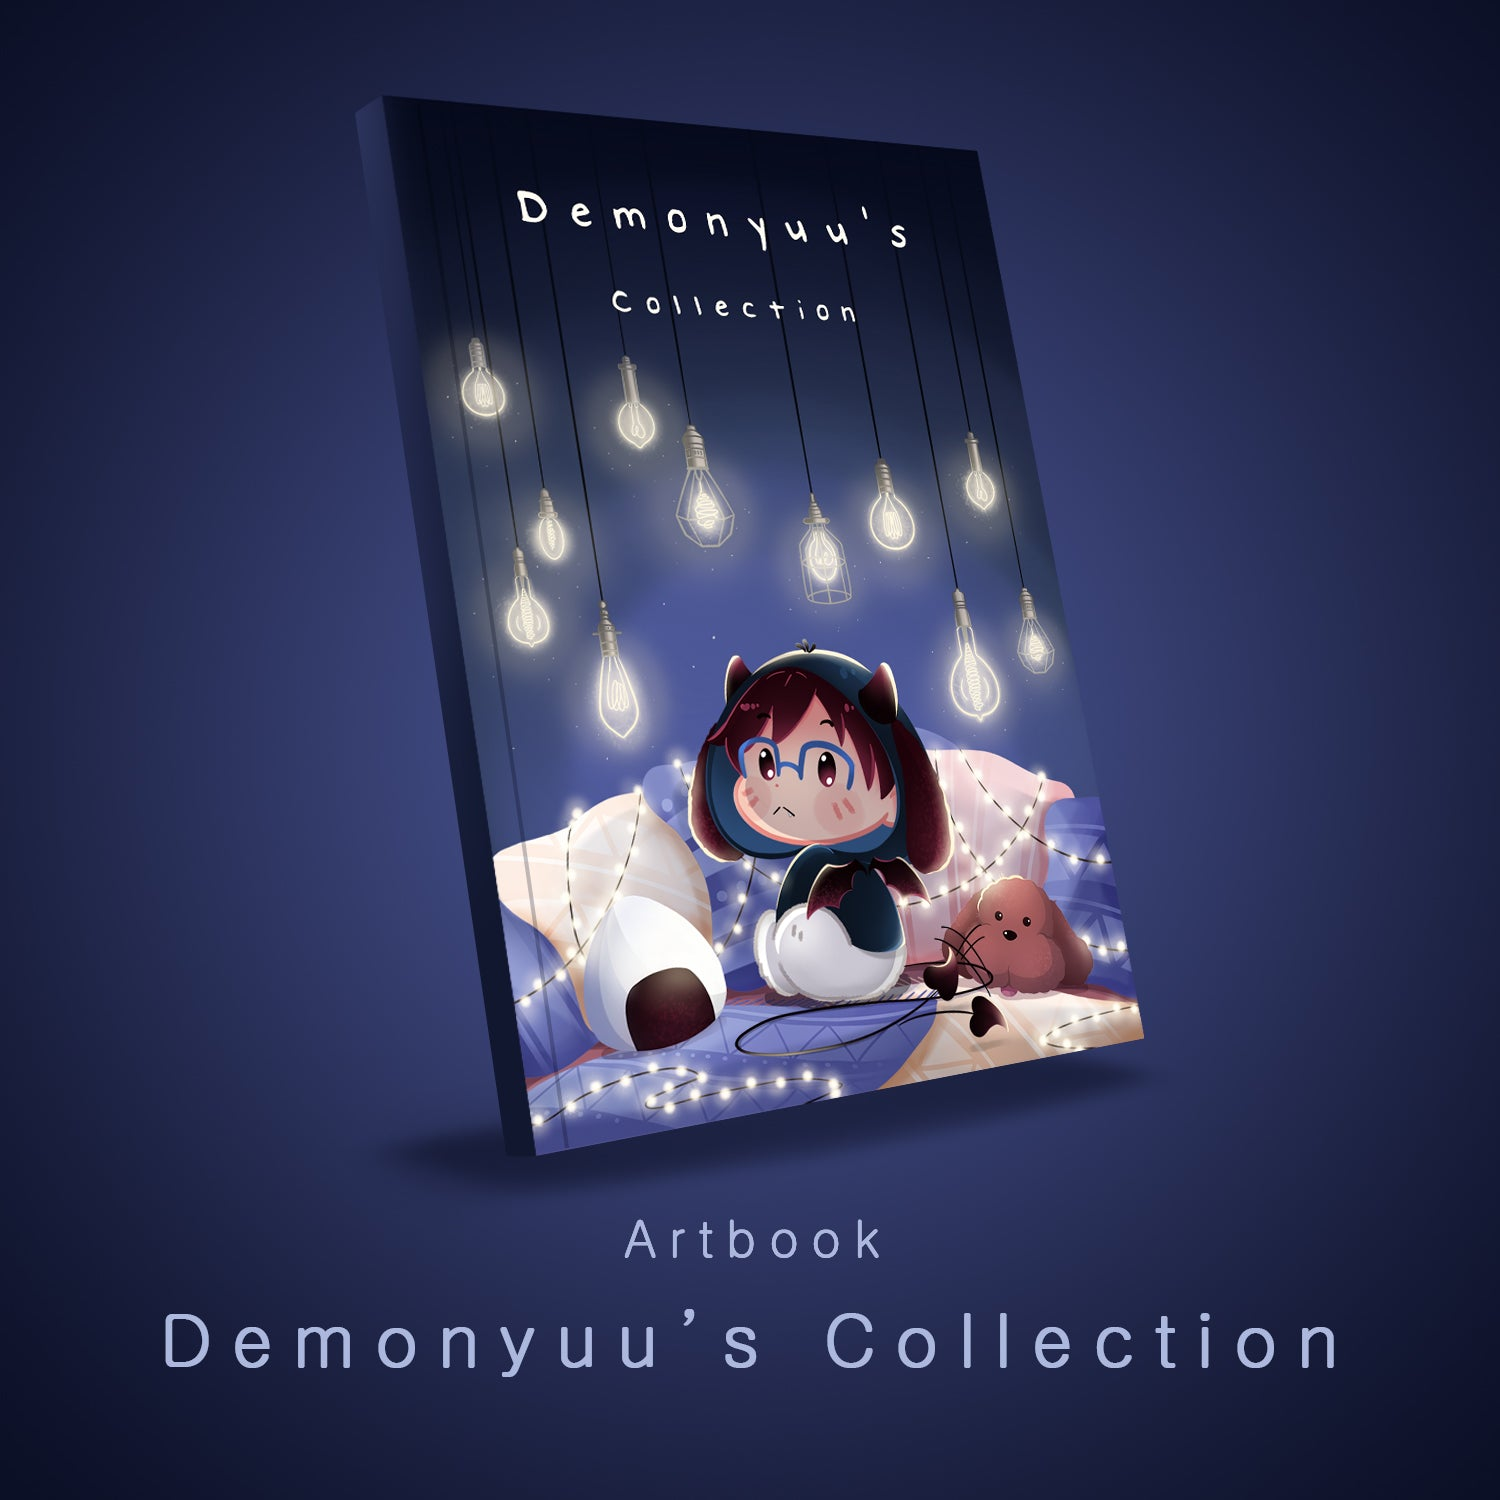 Pre-order [Yuri!!! on Ice] - Demonyuu's collection - Artbook